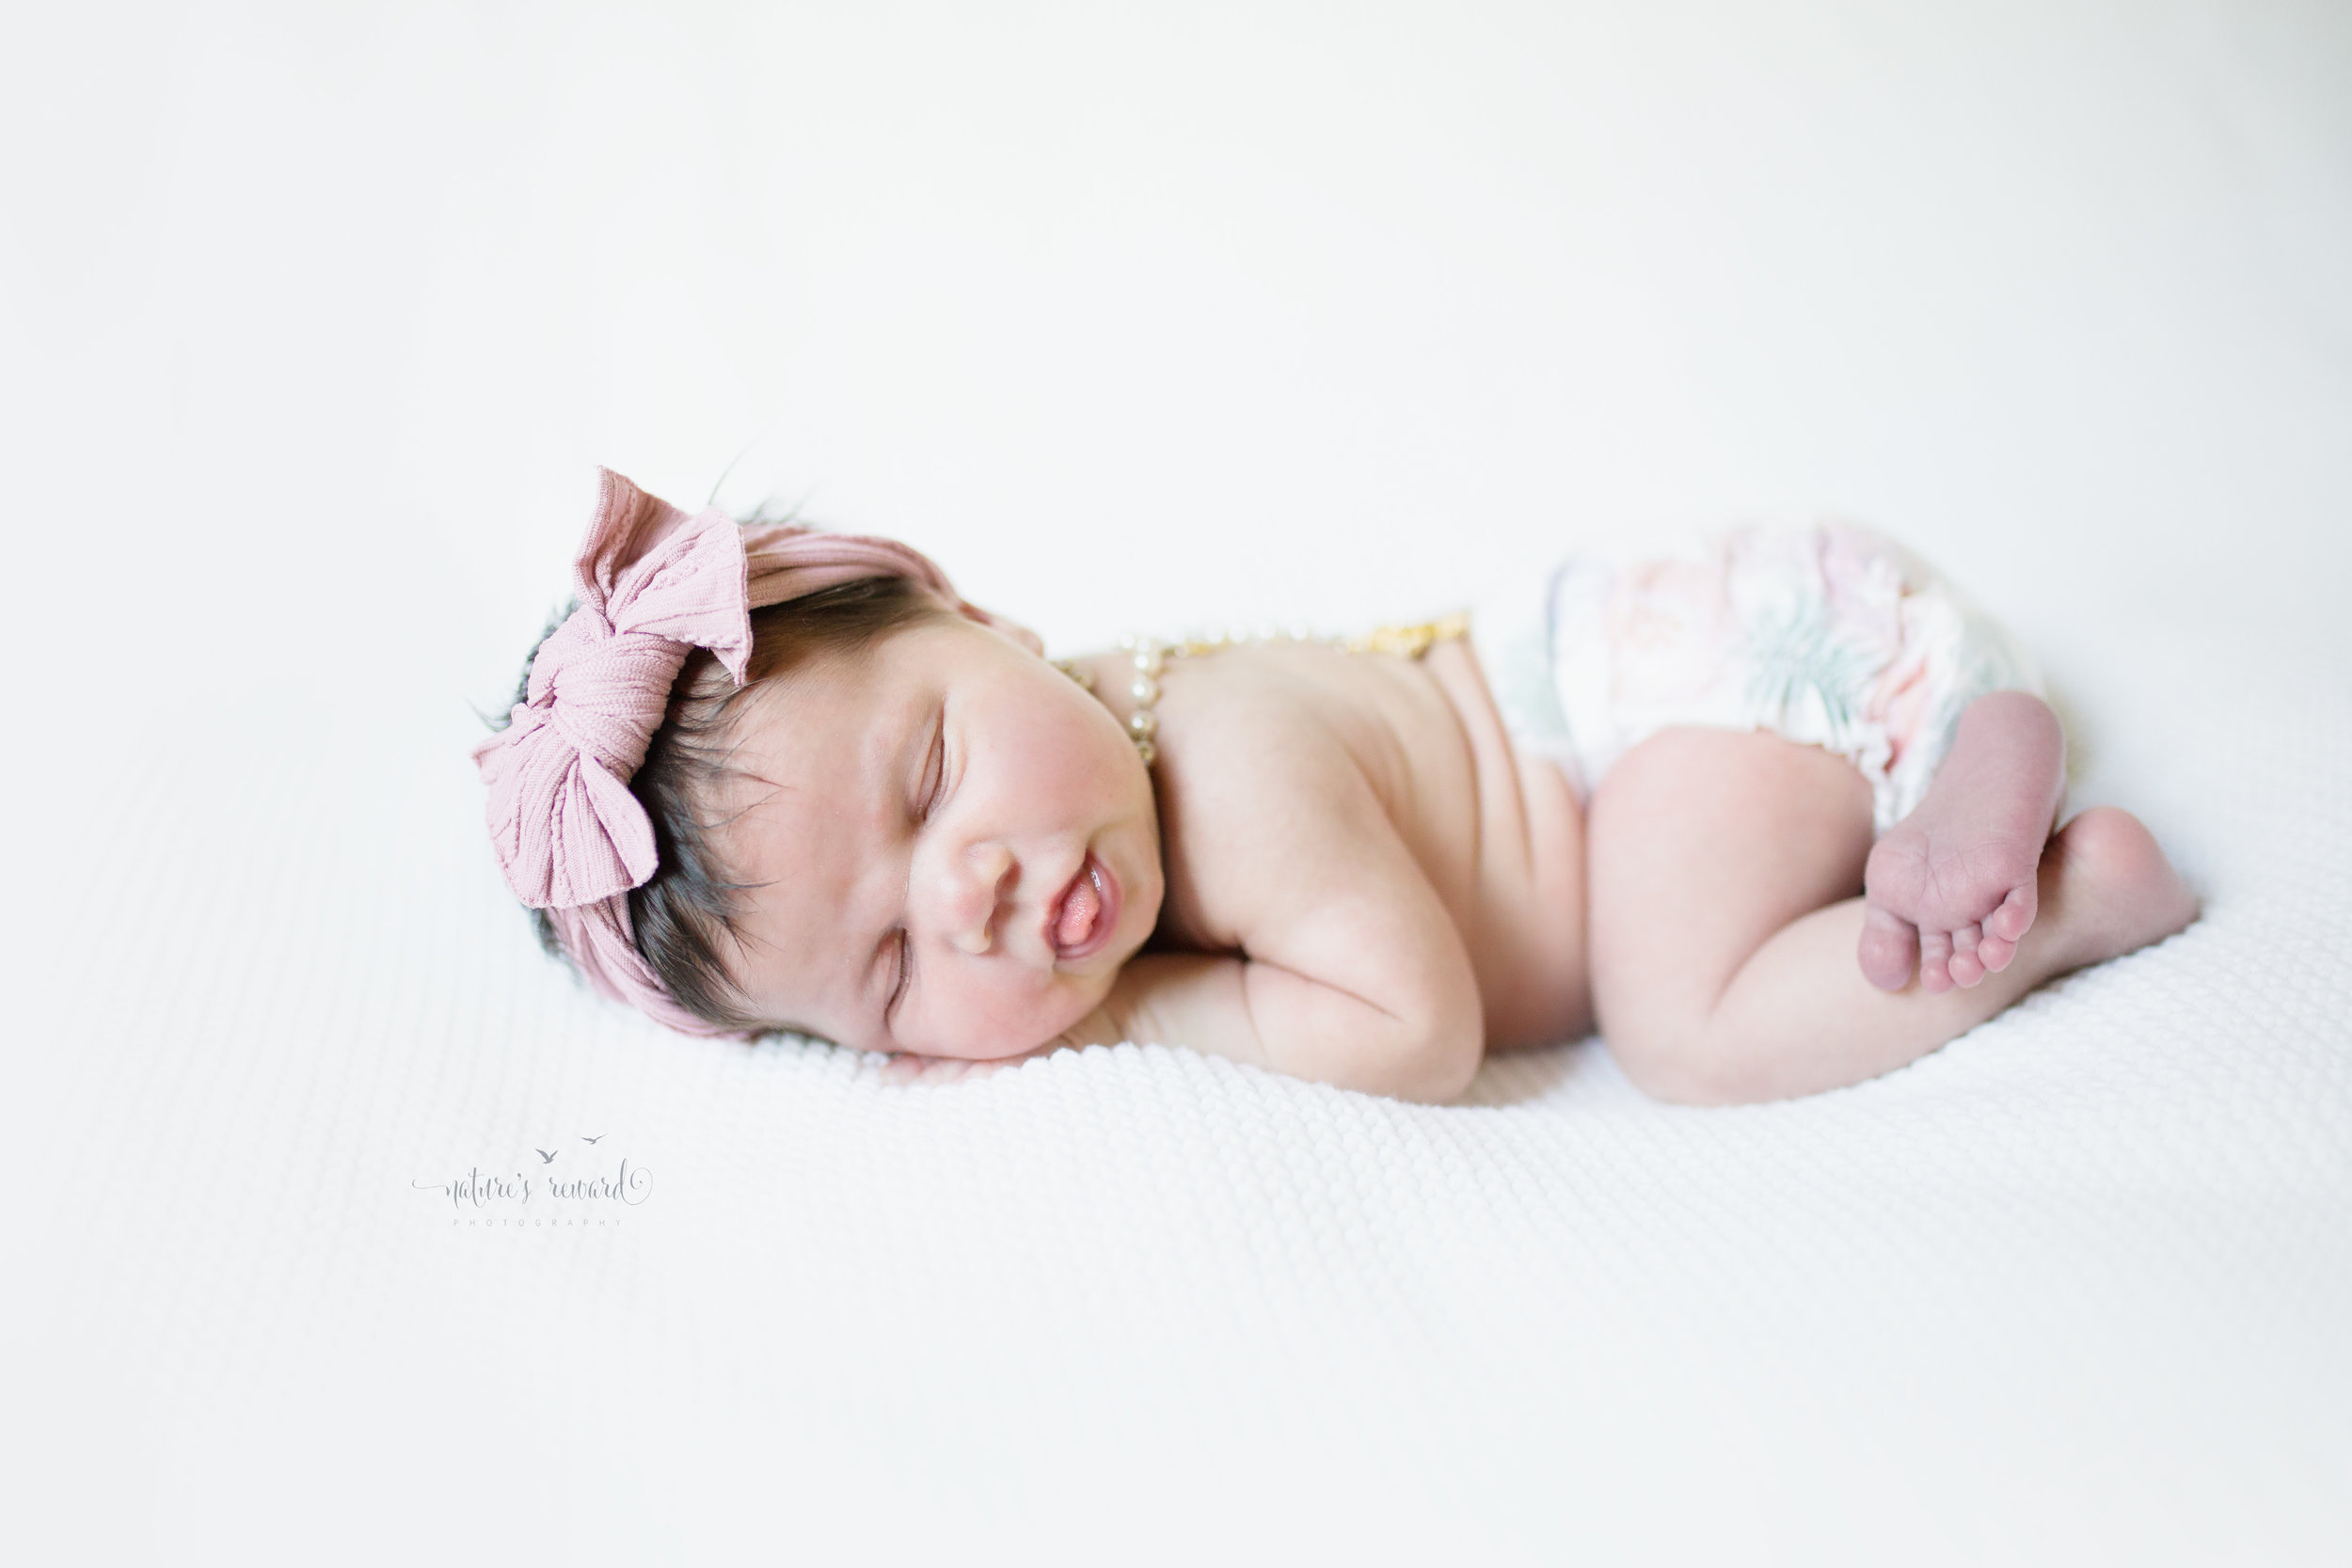 Beautiful baby. Her rosary along her back in a flower diaper and pink headband. Perfection, as she cues us it is time to eat.